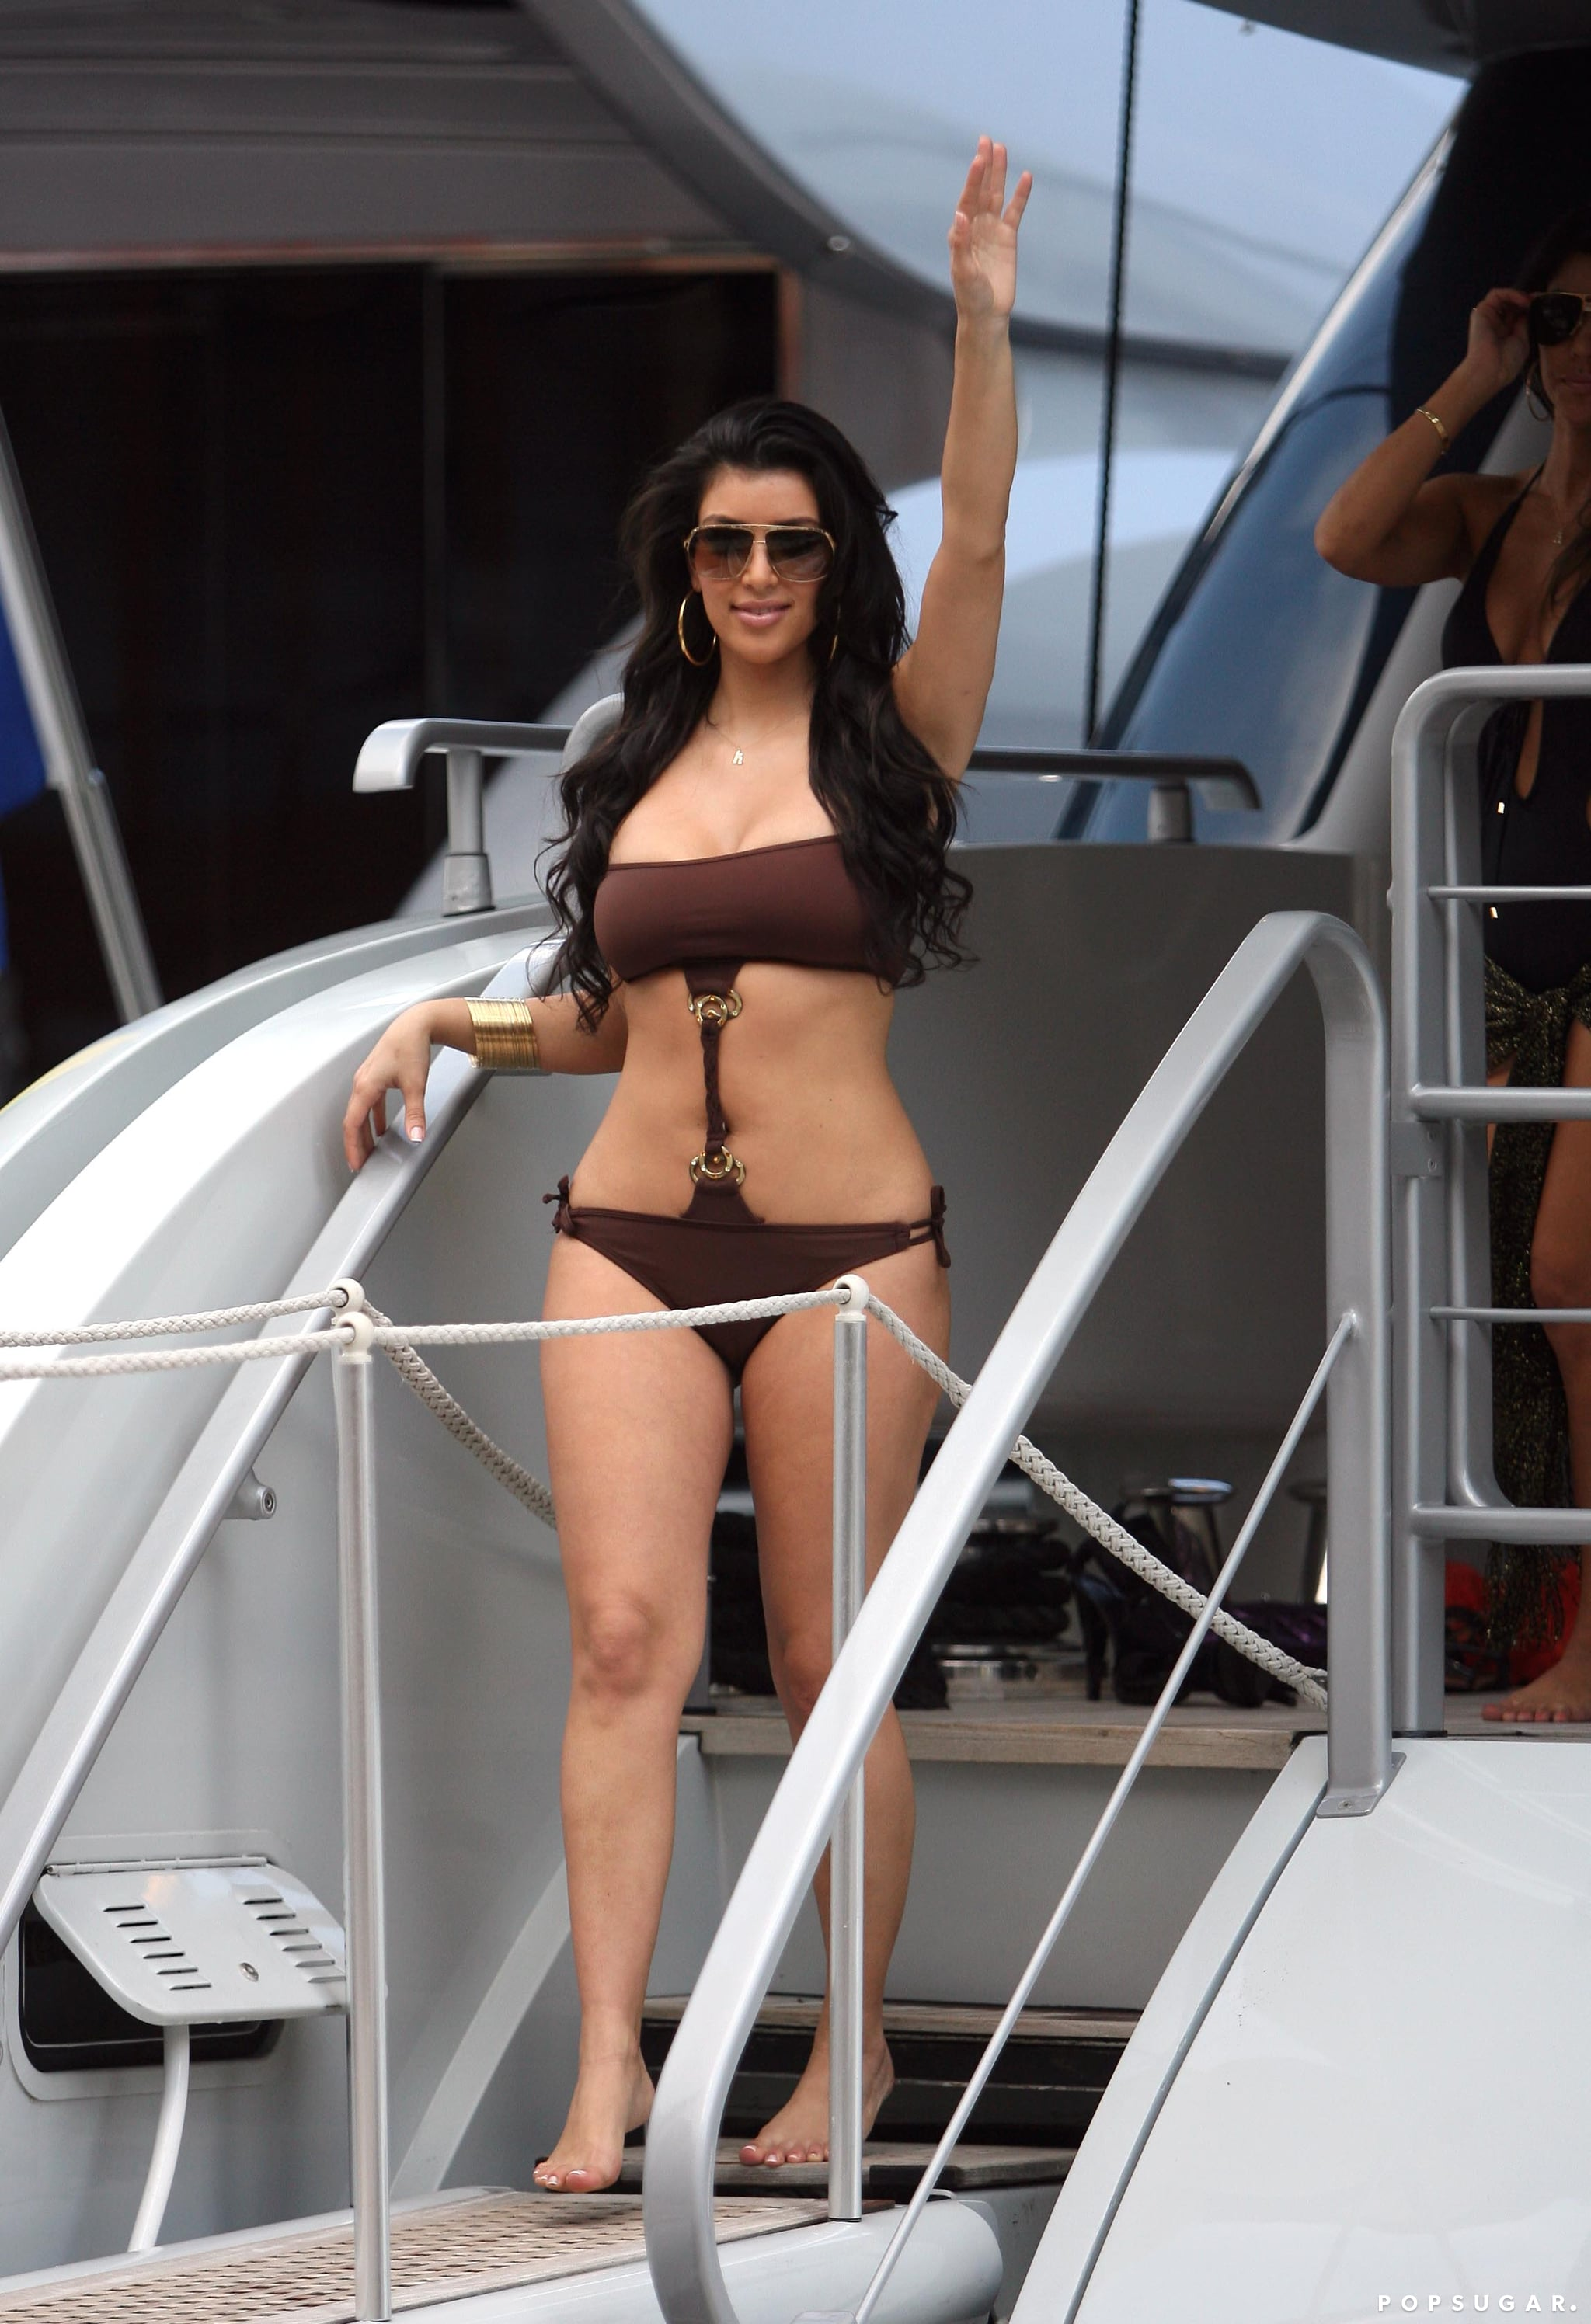 Kim waved to the camera while vacationing in Monte Carlo in June 2008.